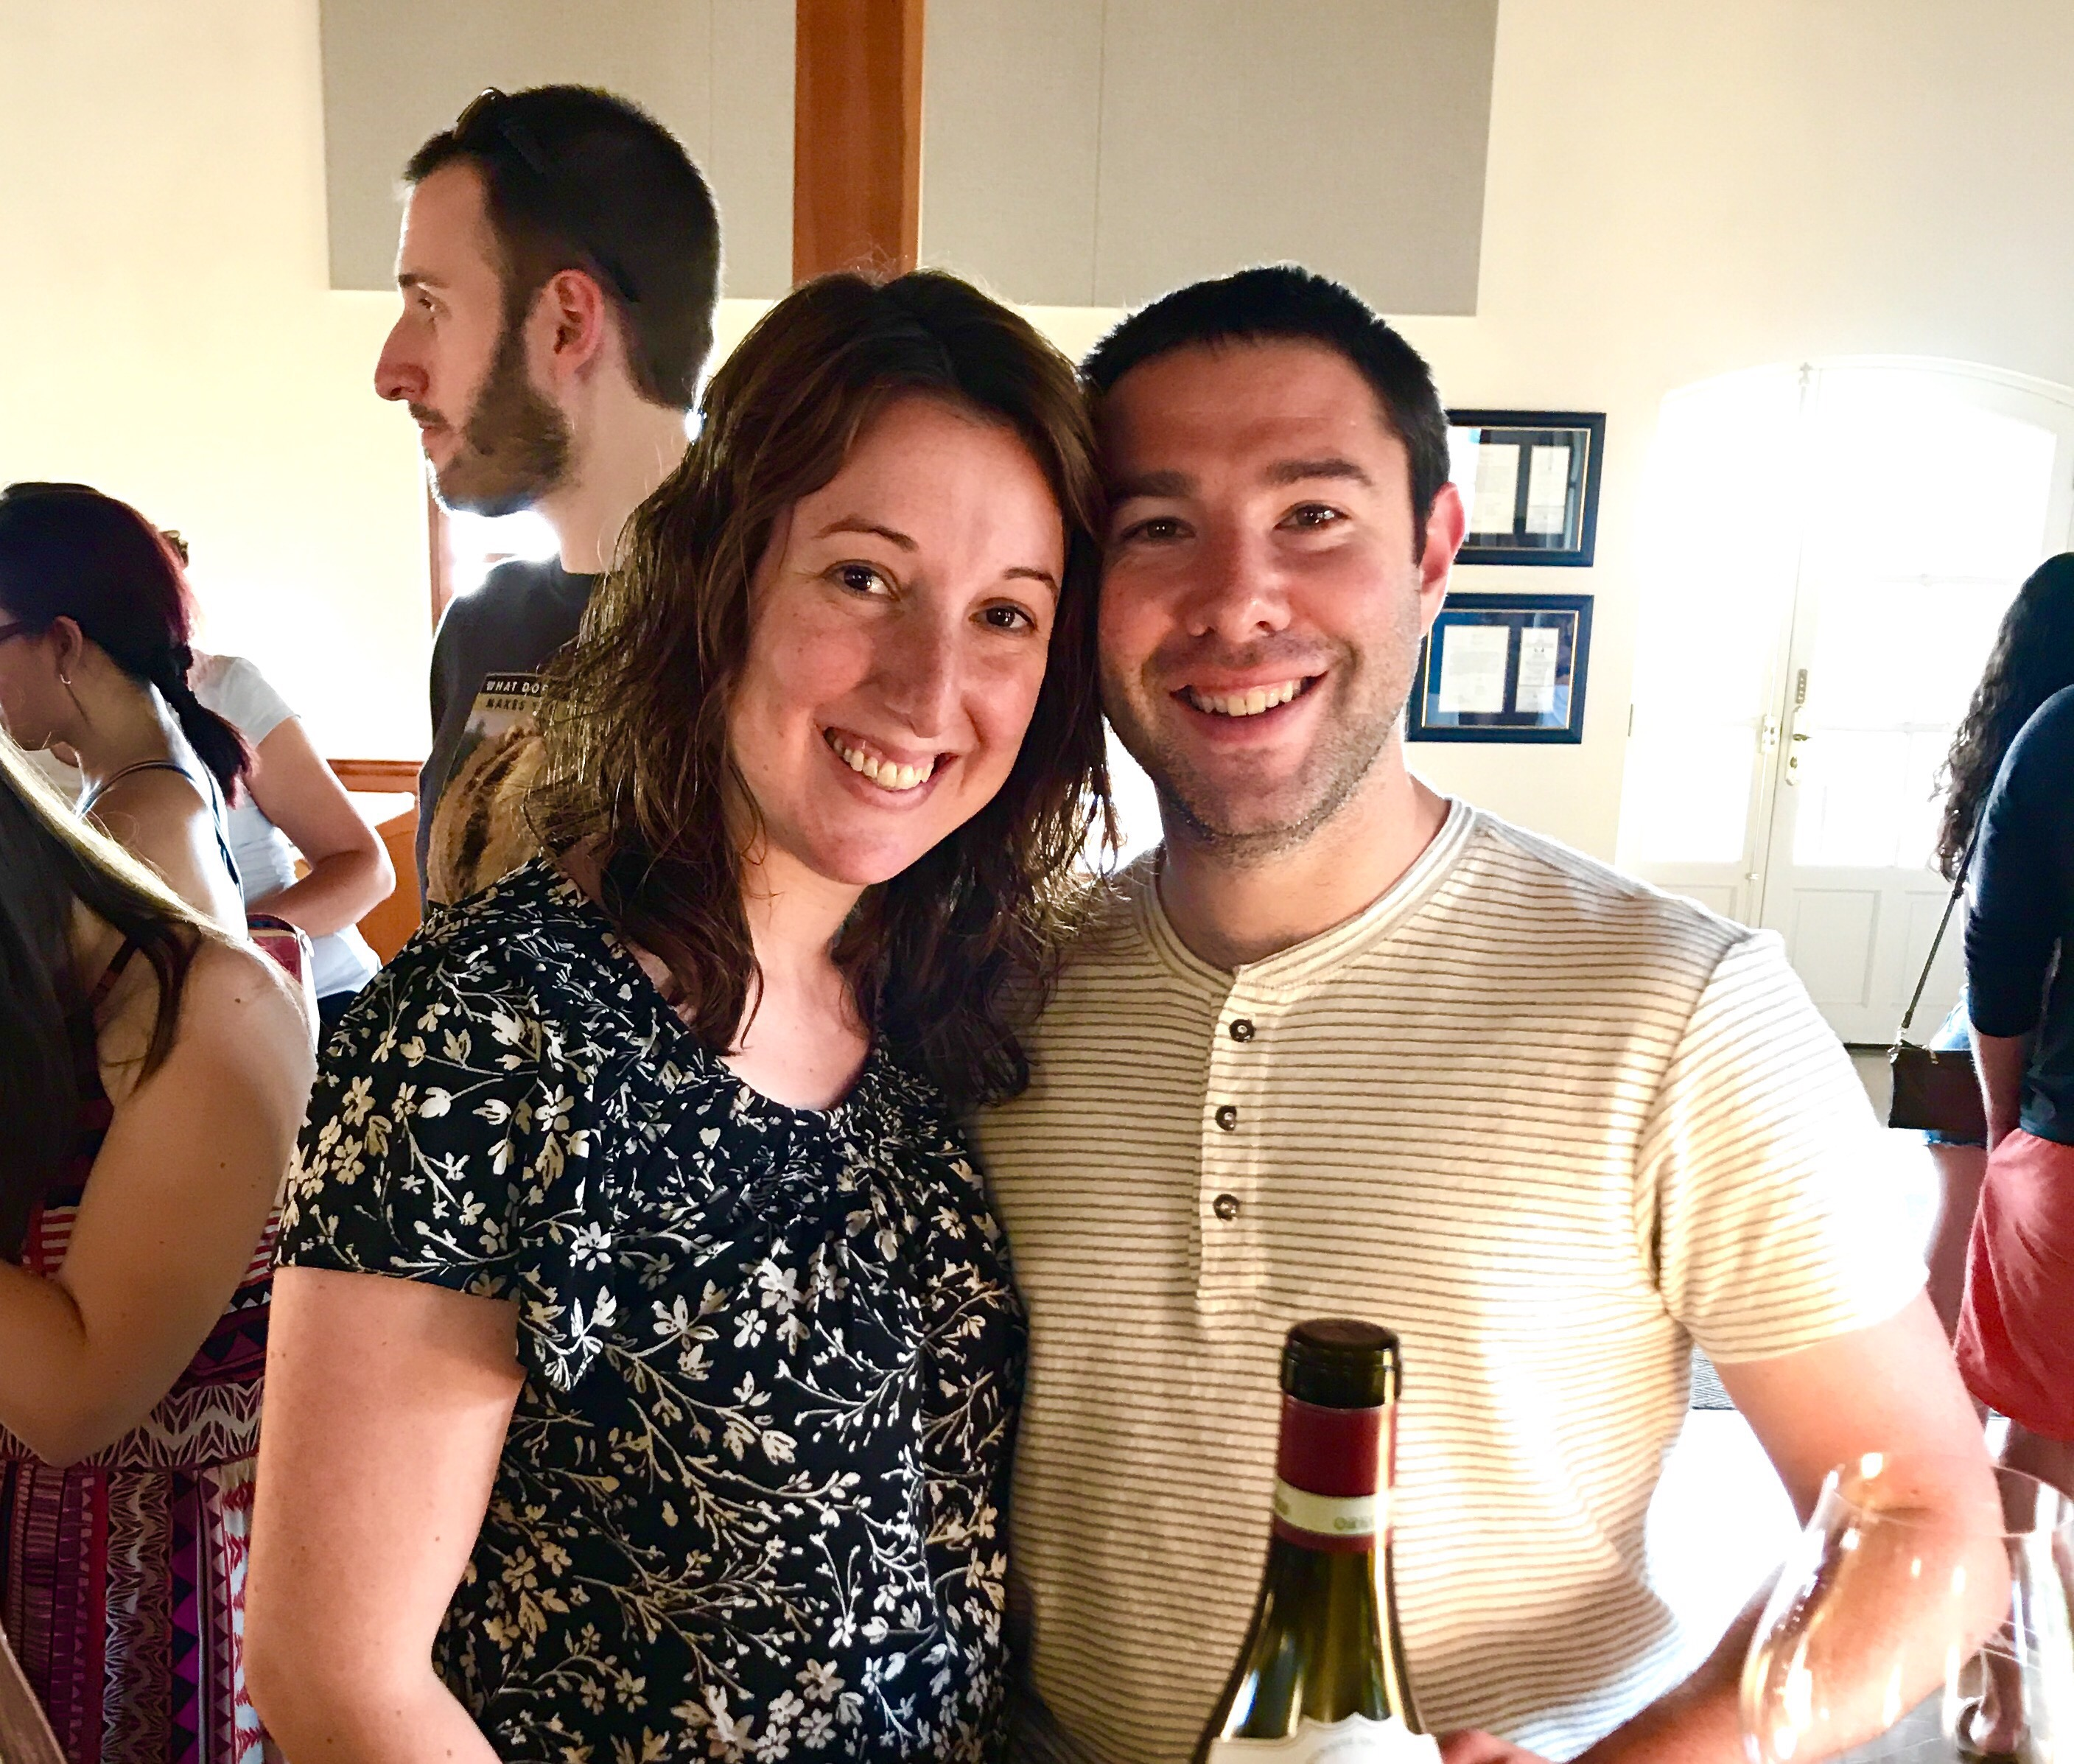 Paul and Marnay at Domaine Drouhin